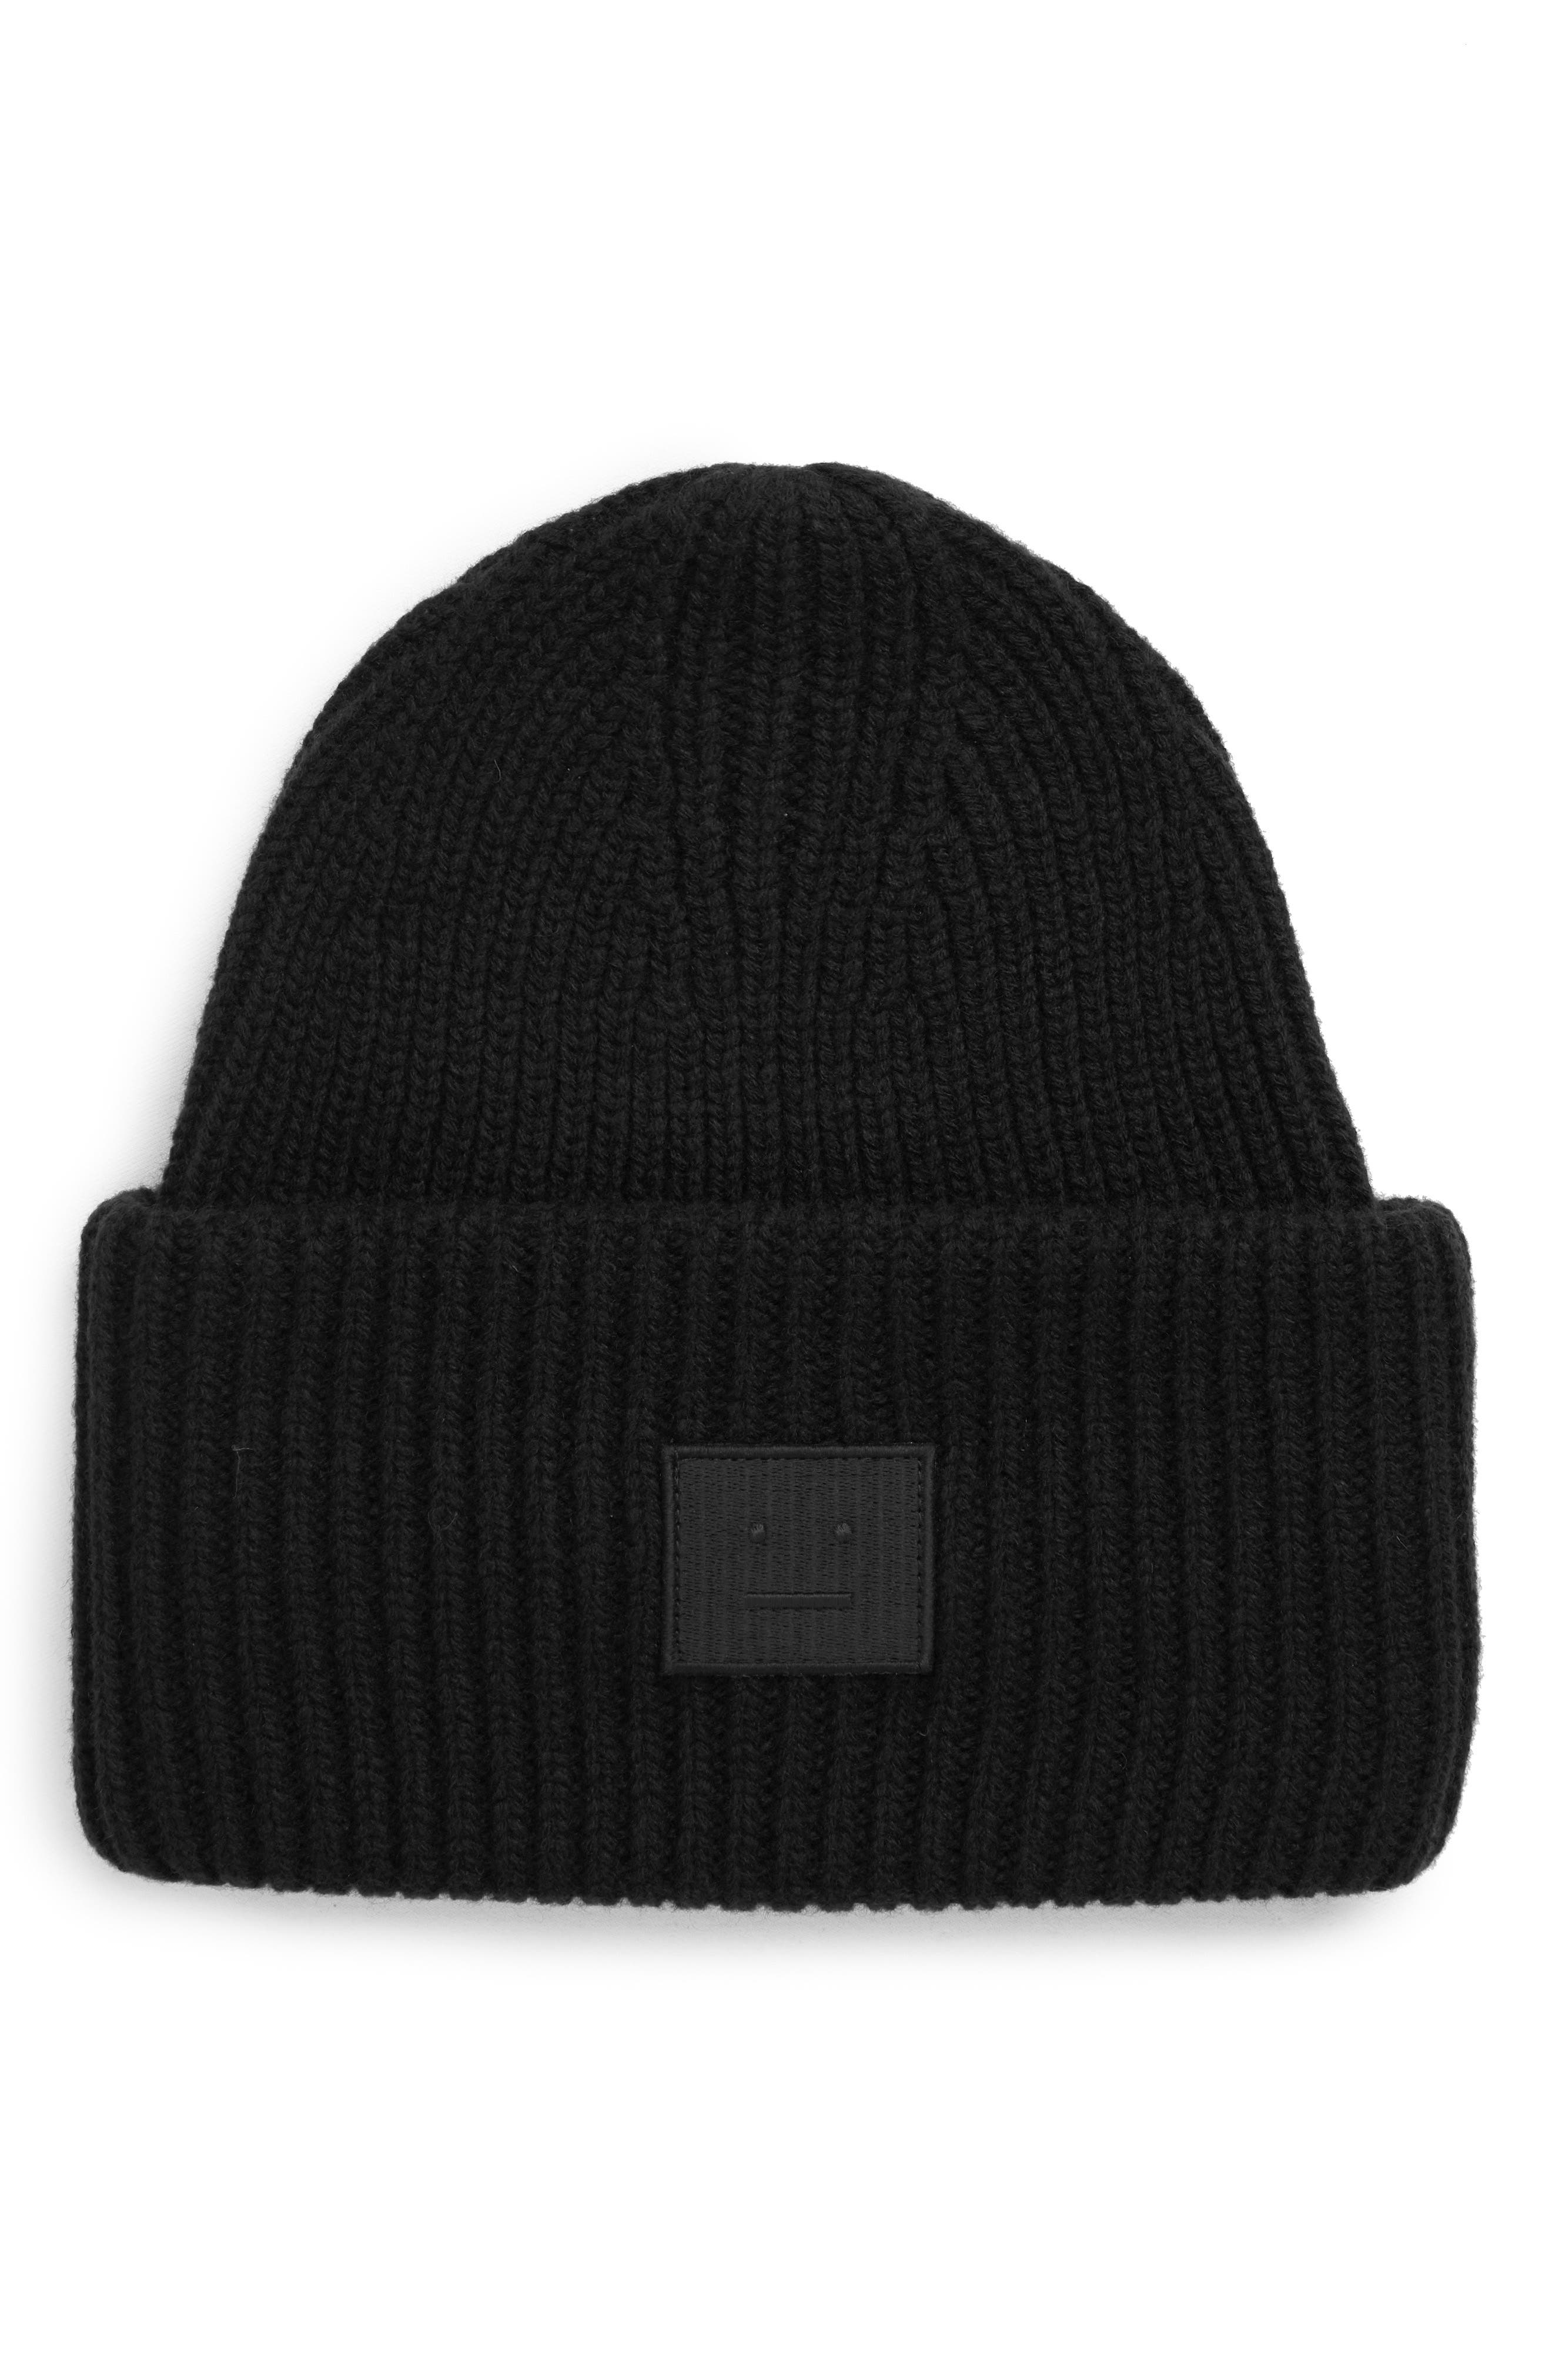 Men's Hats Supply Hot Sale Autumn Winter Men Womens Knitted Wool Skullie Hat Simple Casual Wild Warm Wool Cap For Boy Girl Beanie Hat High Quality Materials